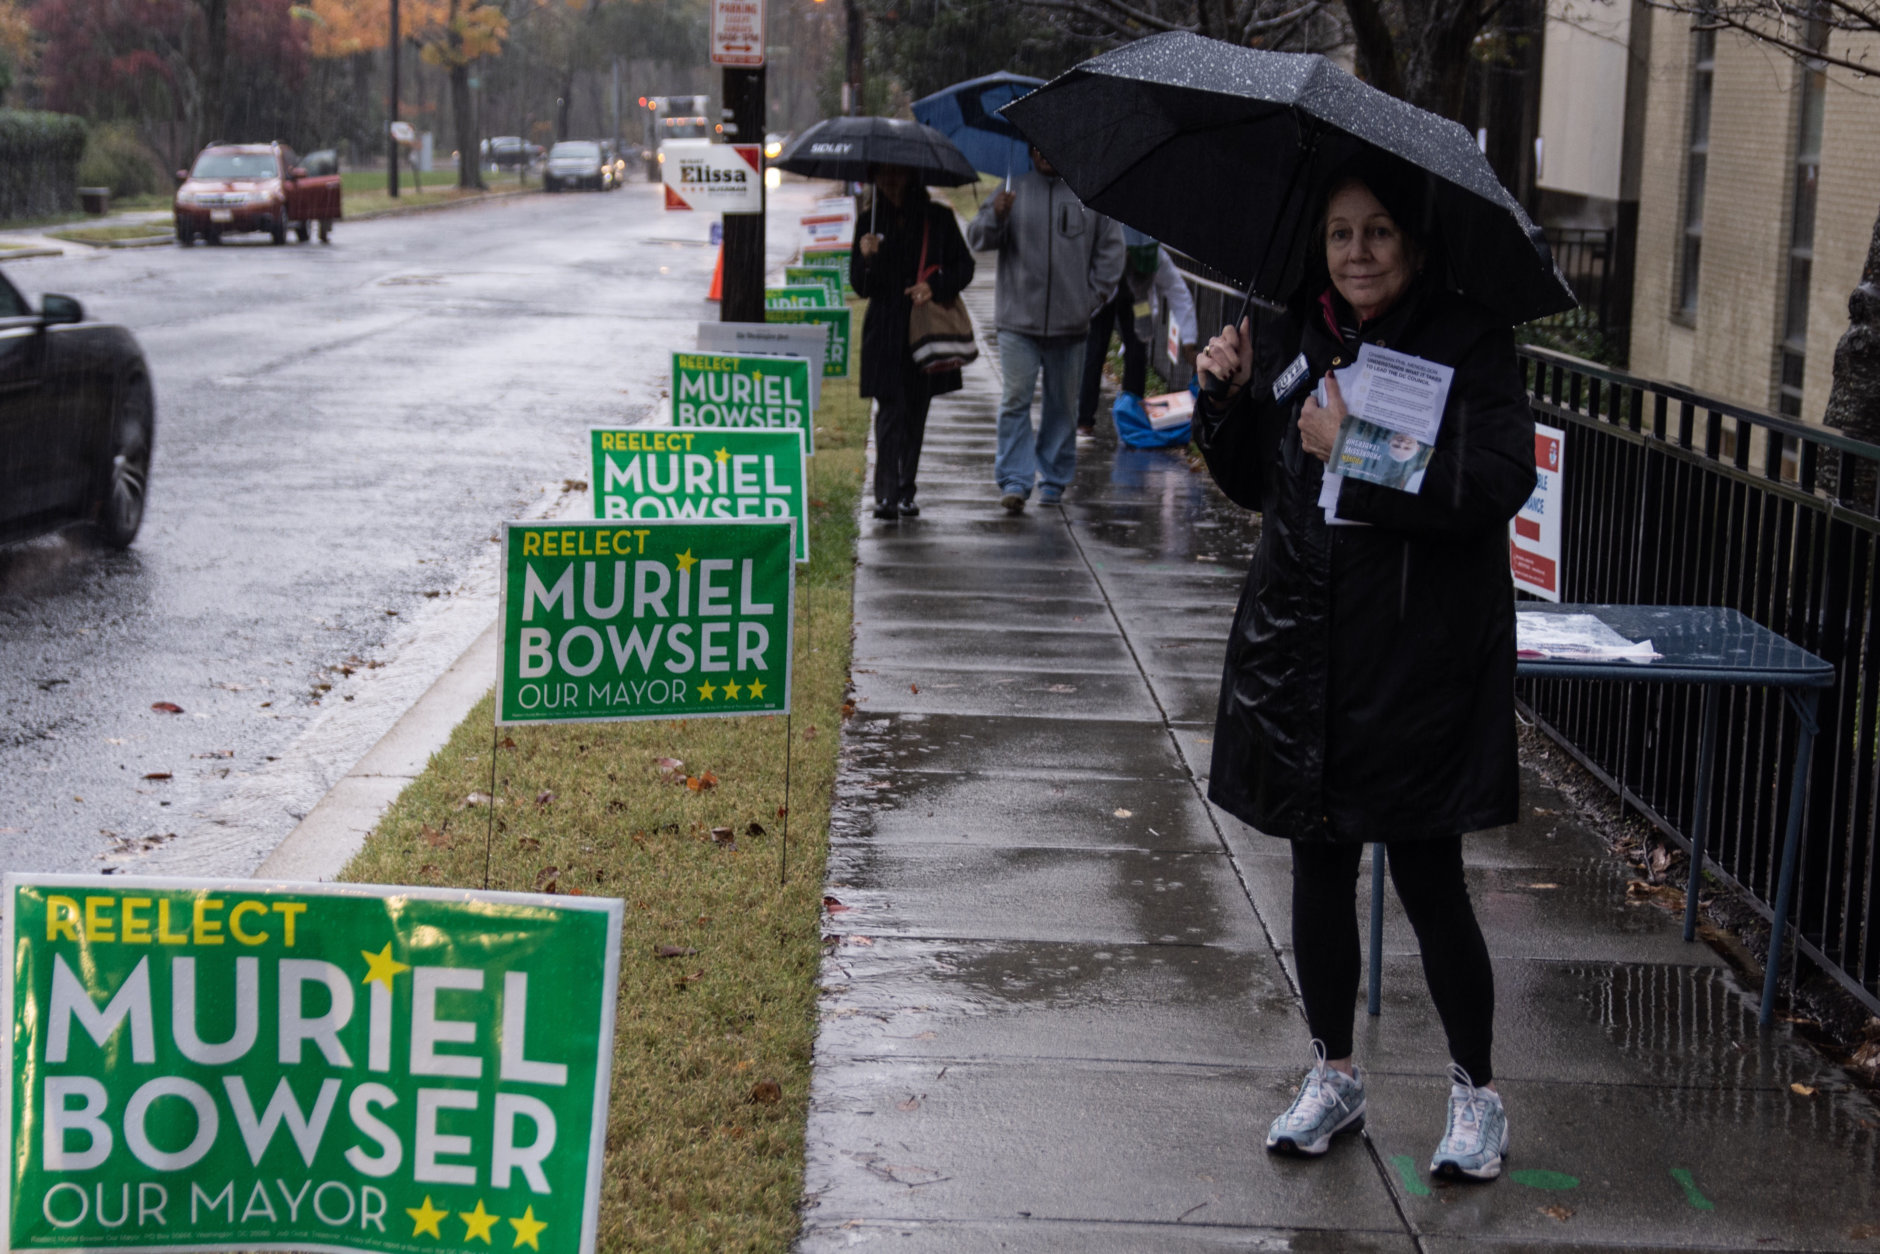 Signs for local candidates compete for space on the sidewalk as voters arrive at the Washington Hebrew Congregation in Northwest D.C. (WTOP/Alejandro Alvarez)